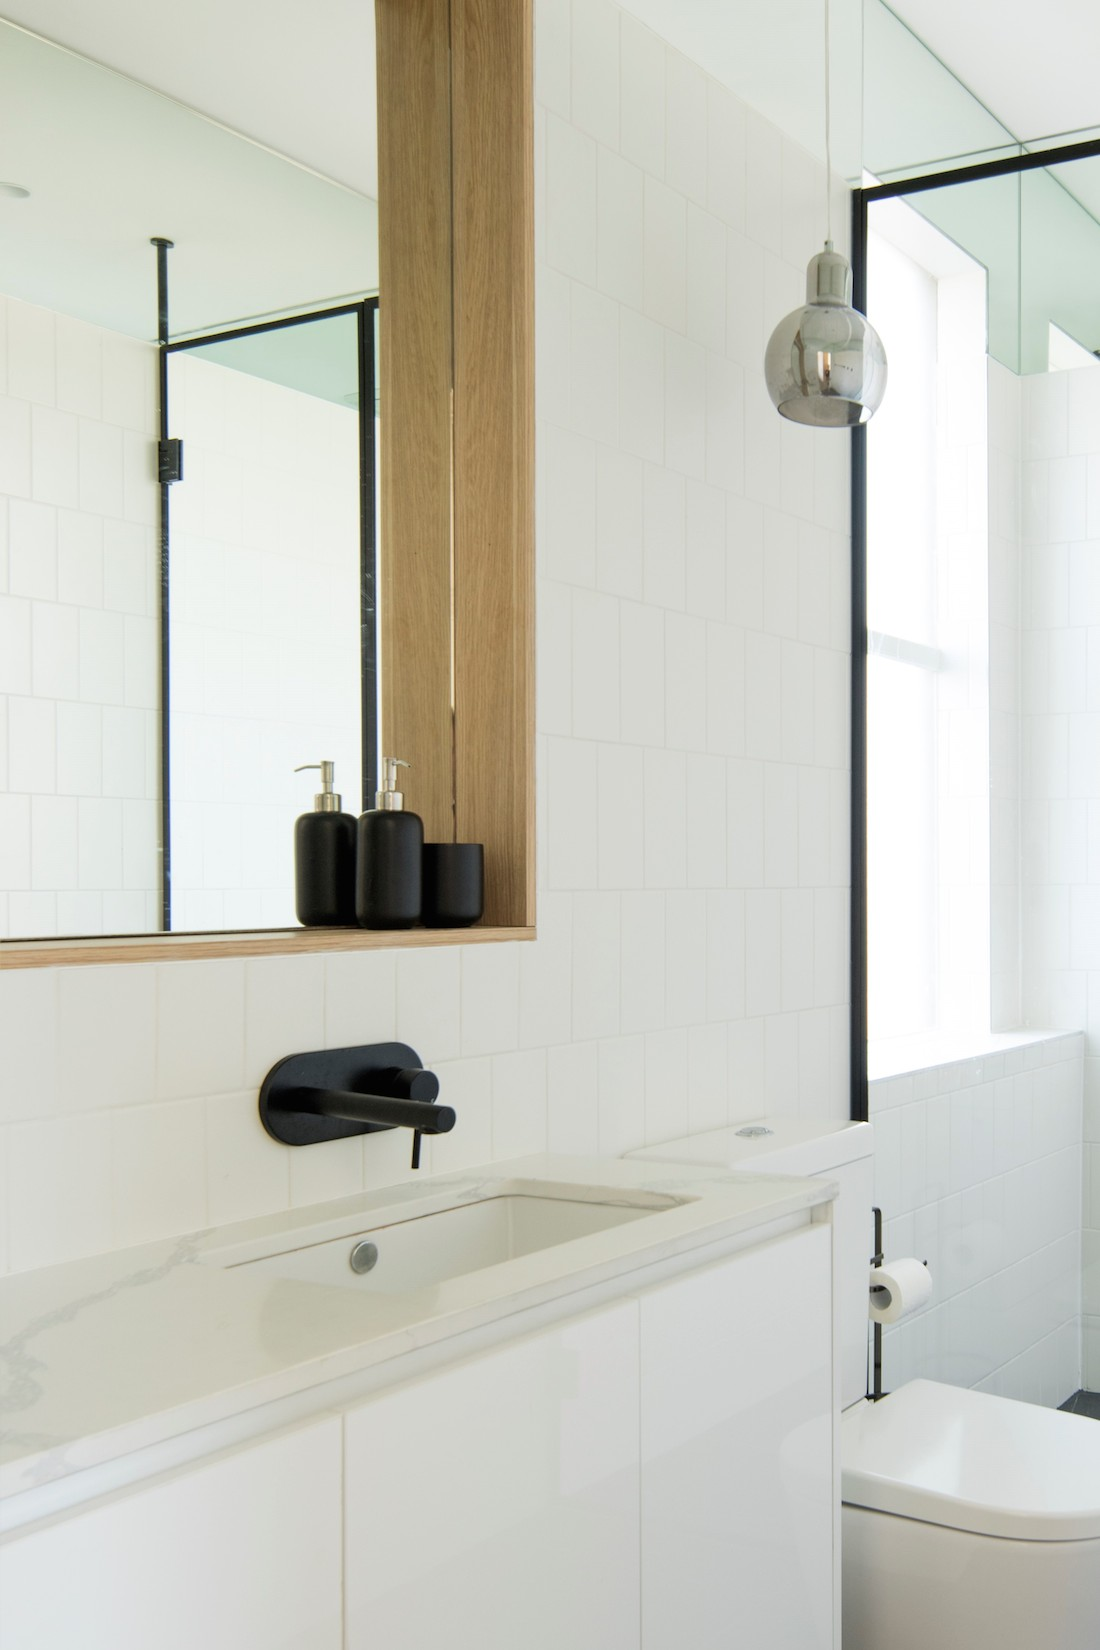 Ensuite features in tight heritage townhouse